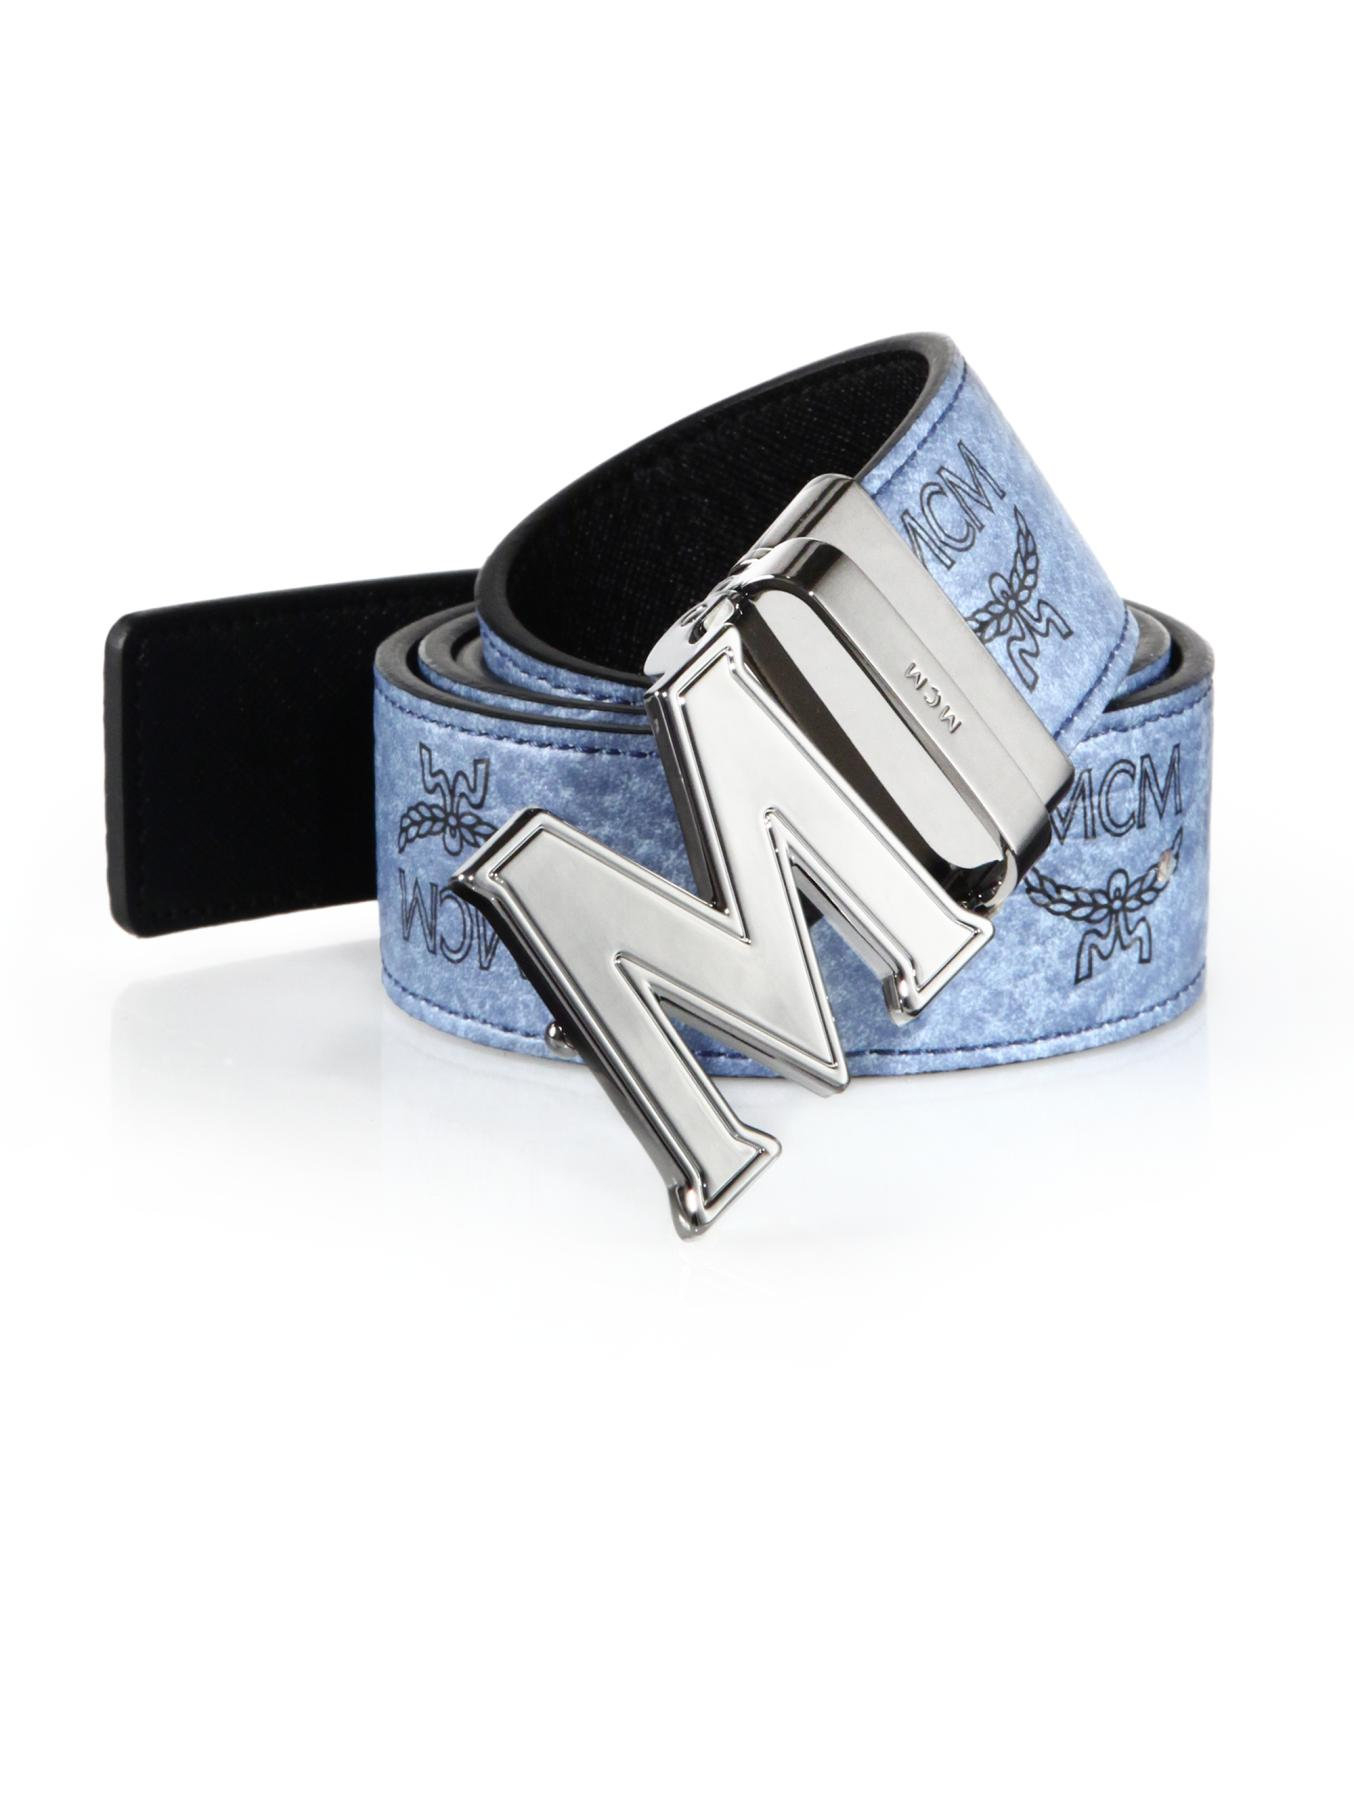 Lyst Mcm Claus Reversible Belt In Blue For Men